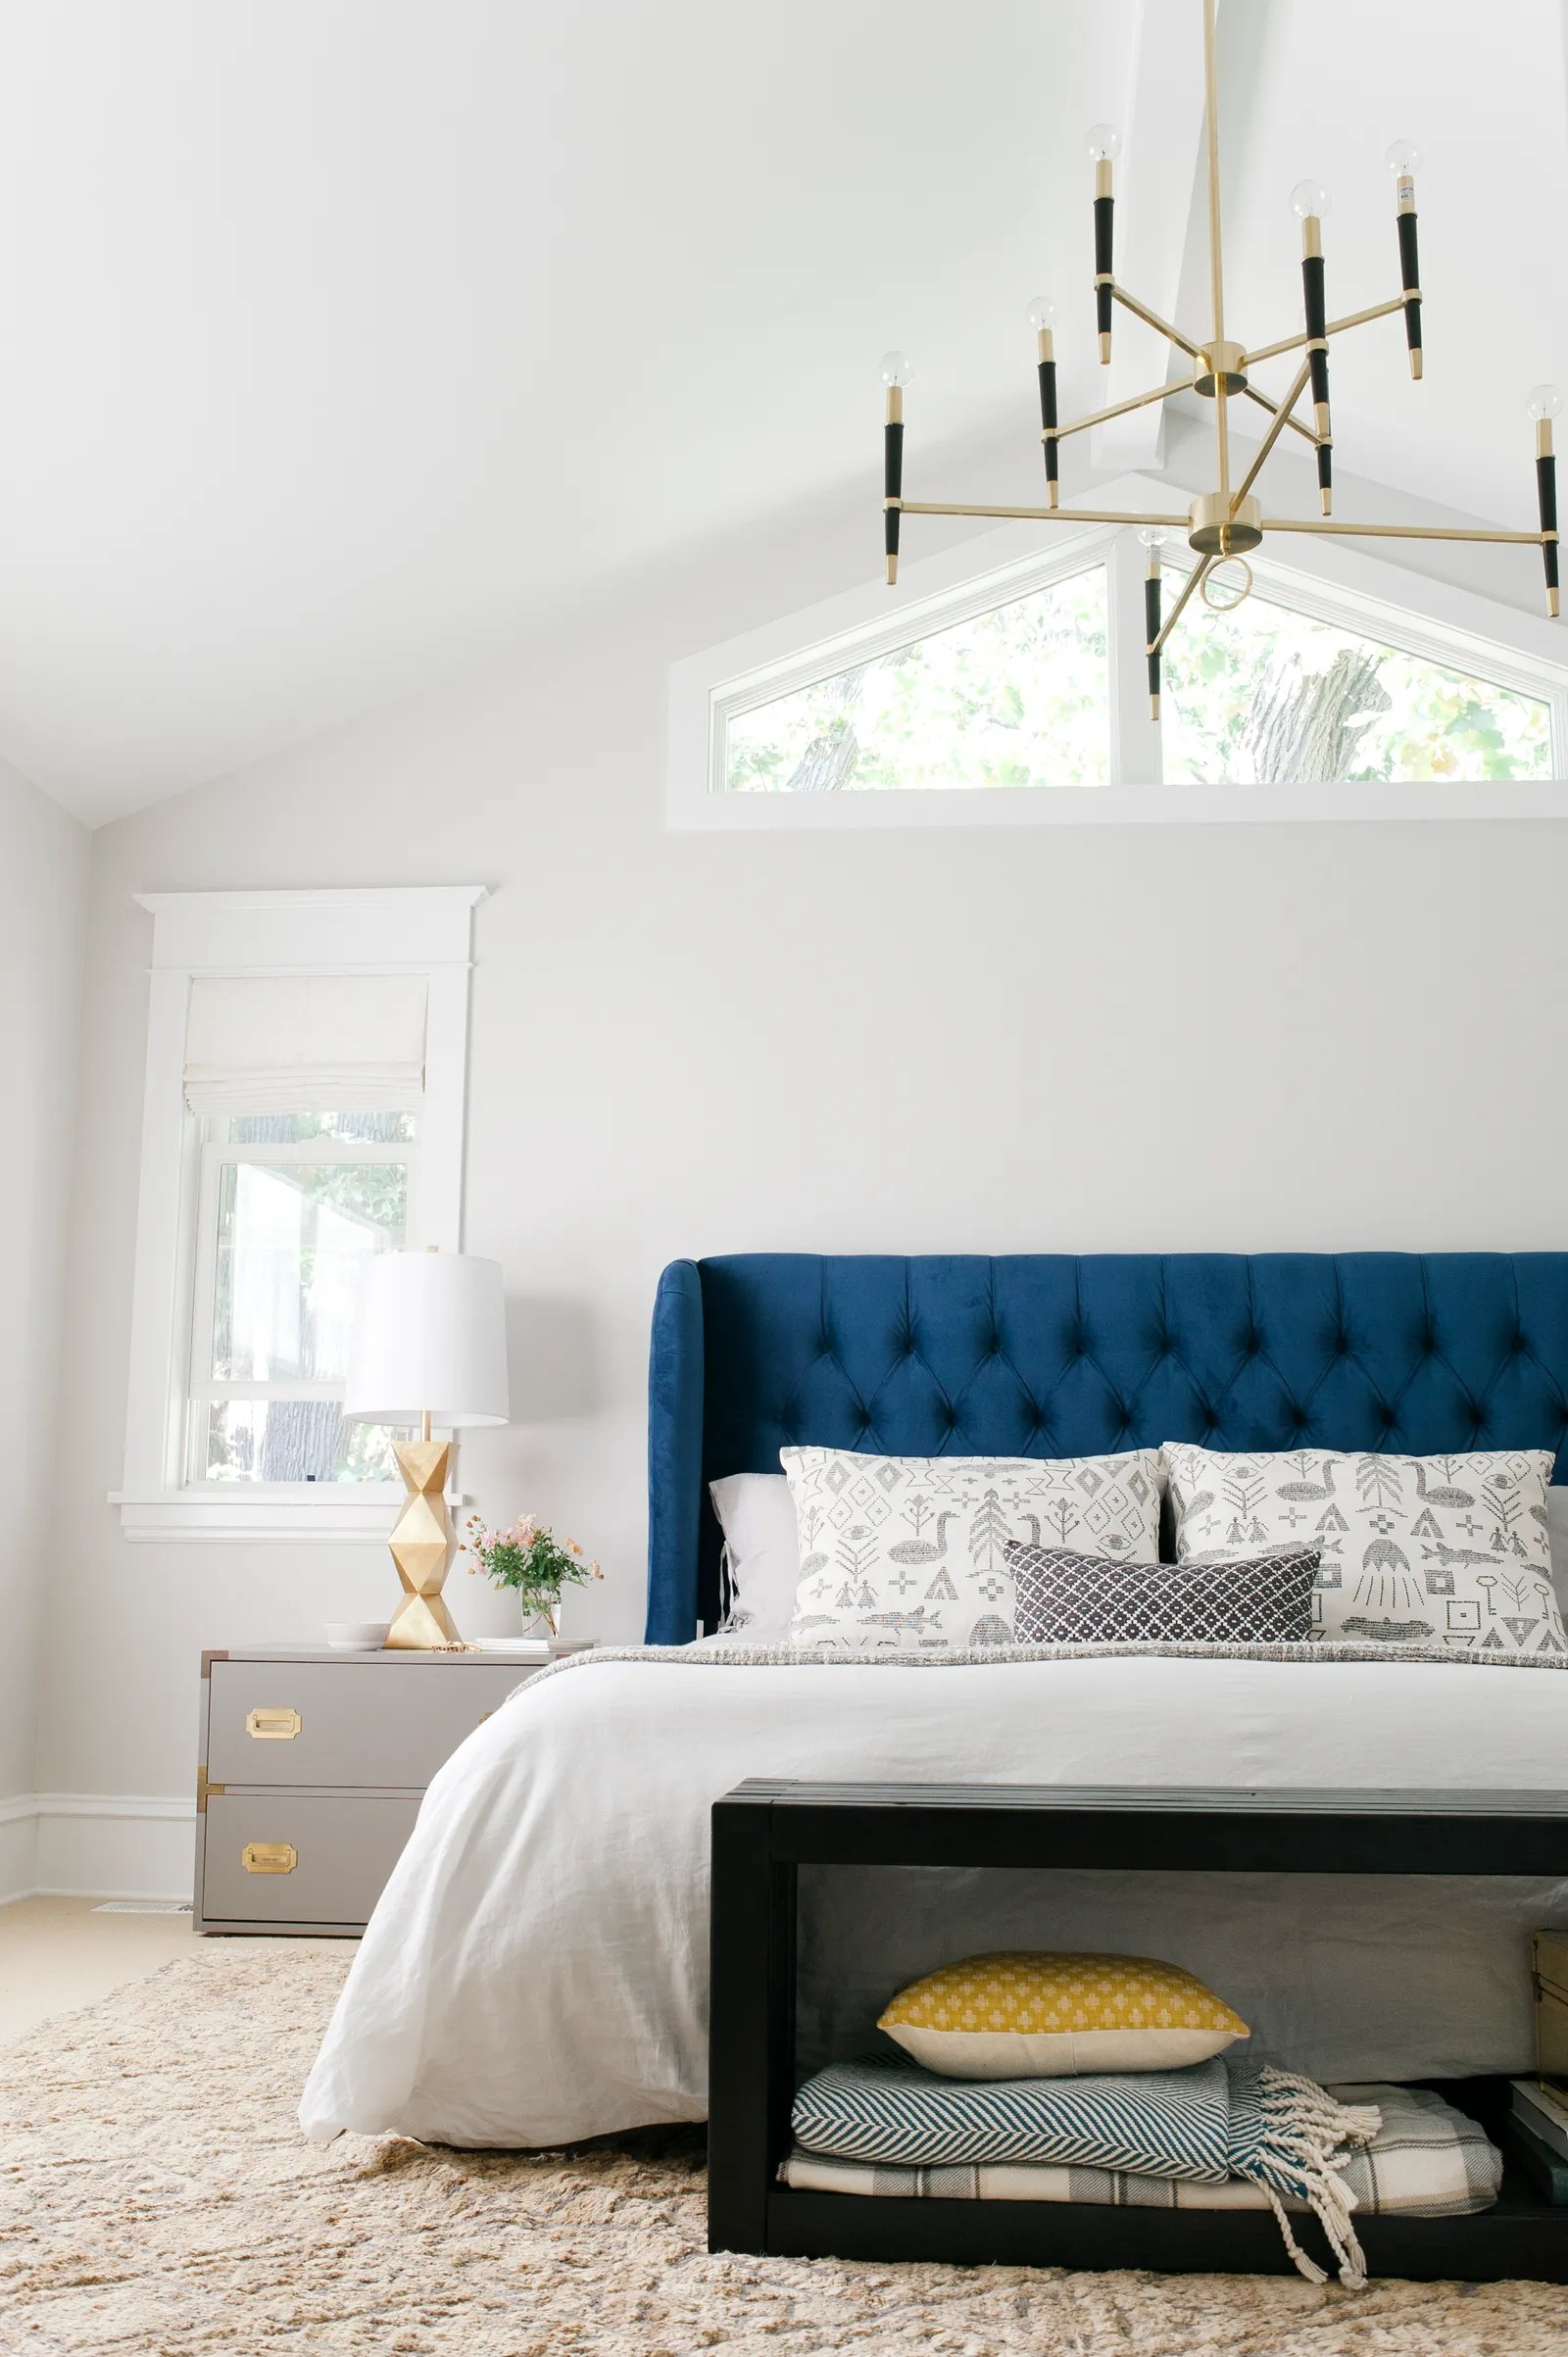 Settee End Of Bed How To Choose A Bedroom Bench Architectural Digest